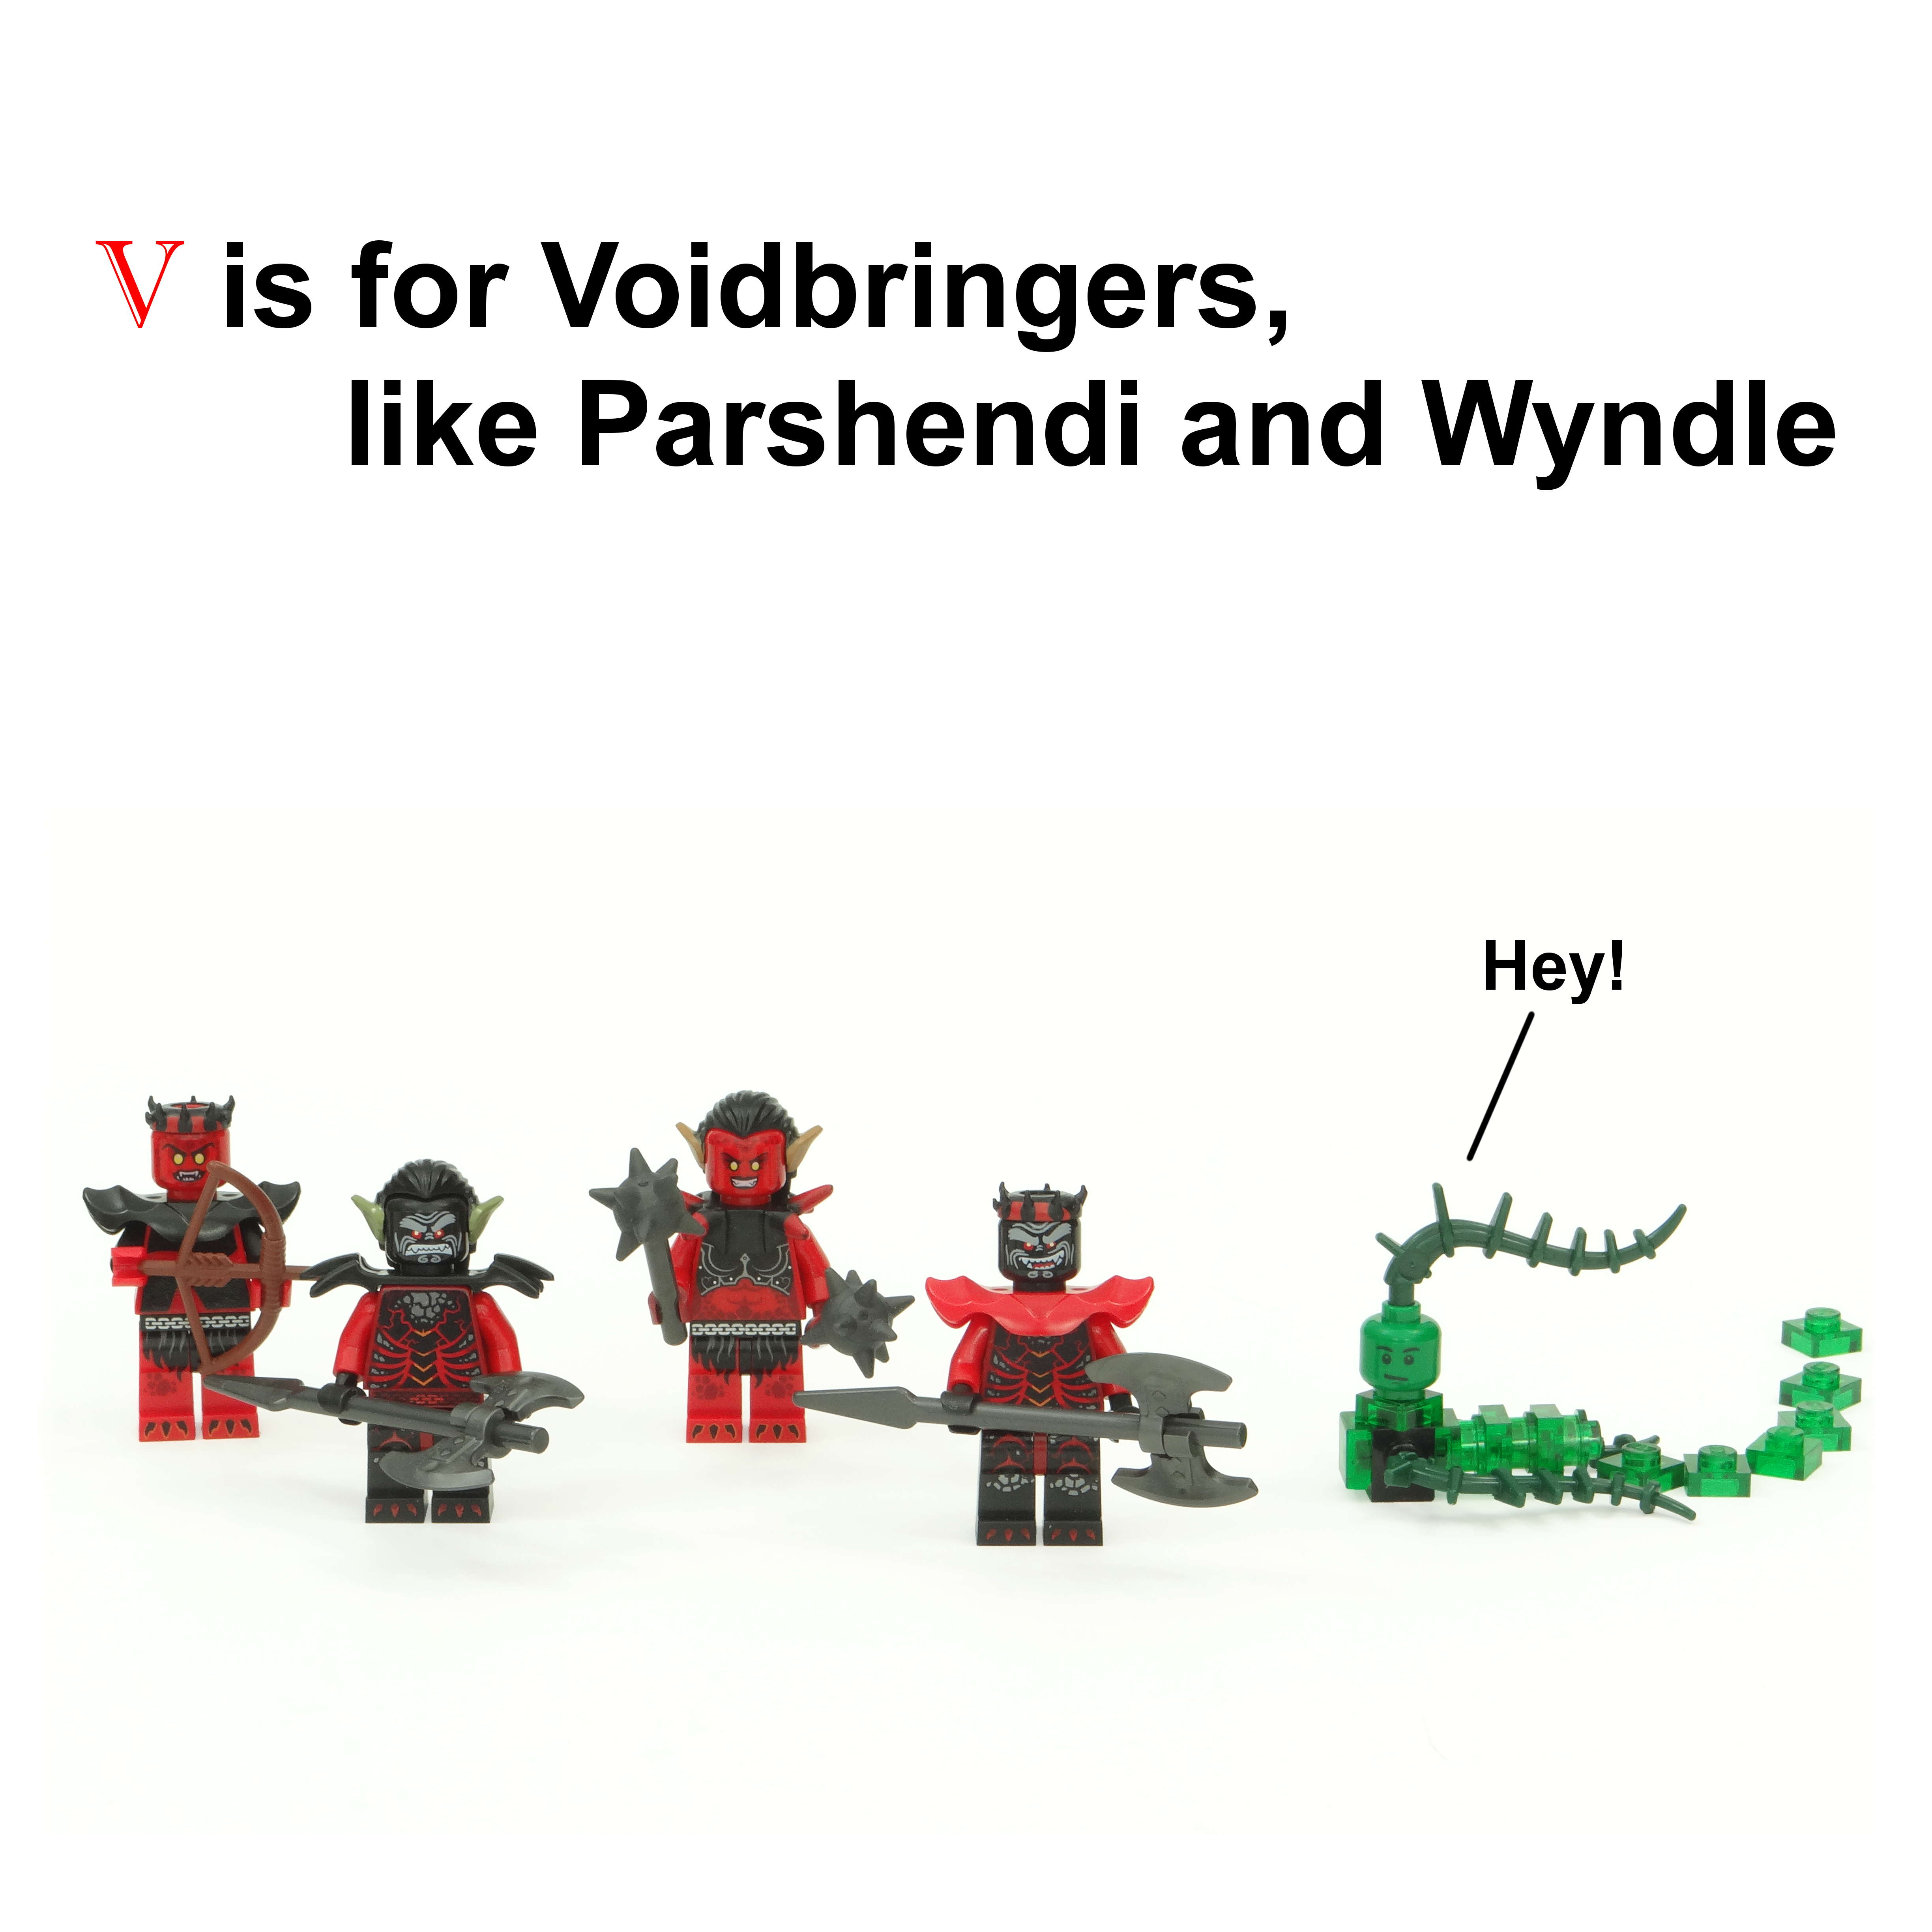 V-is-for-Voidbringers